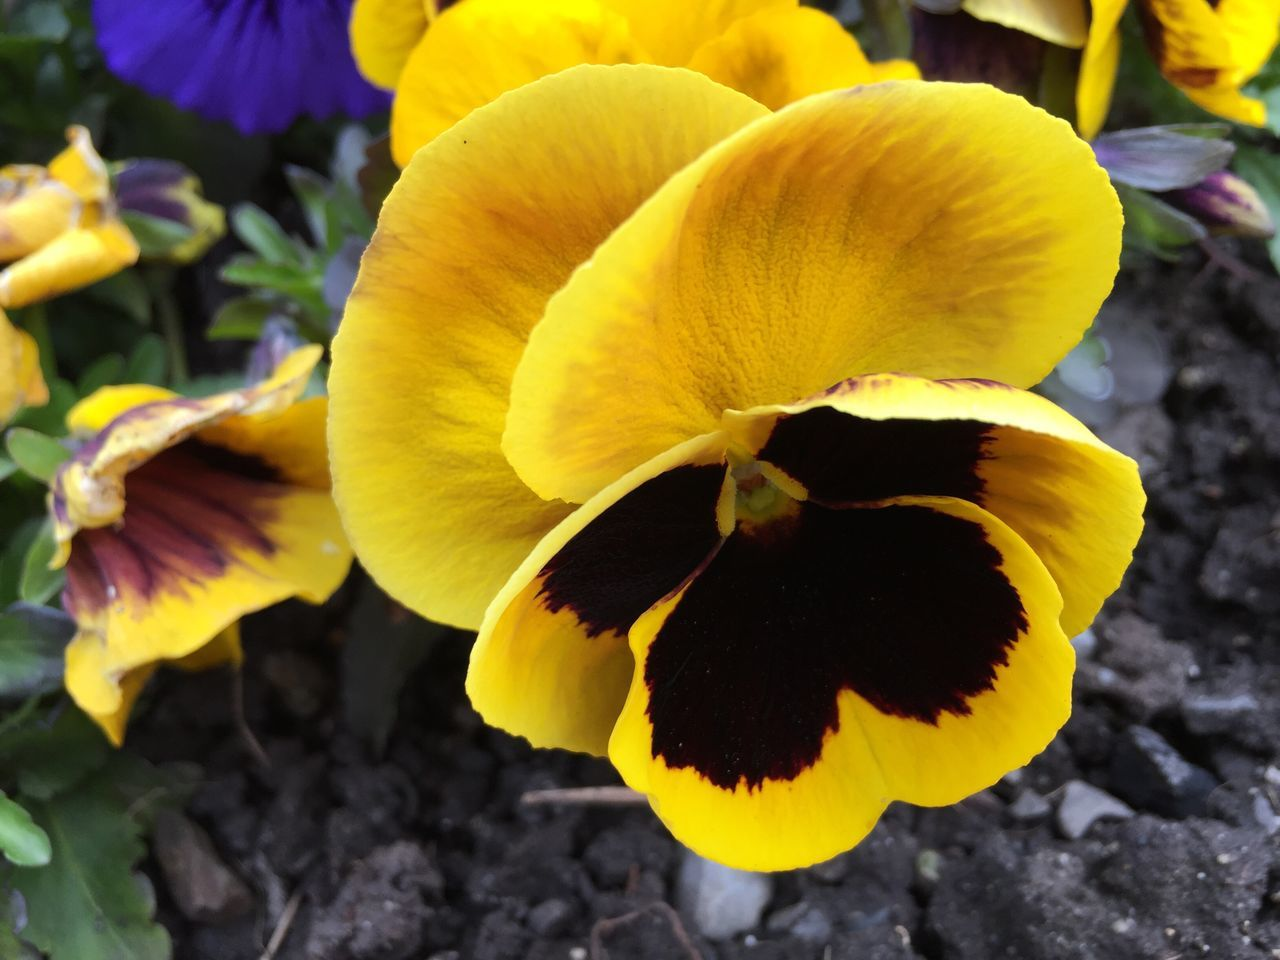 Flower Yellow Petal Fragility Beauty In Nature Nature Close-up Blooming Flower Head Growth Plant Freshness No People Outdoors Day Primrose Blossom